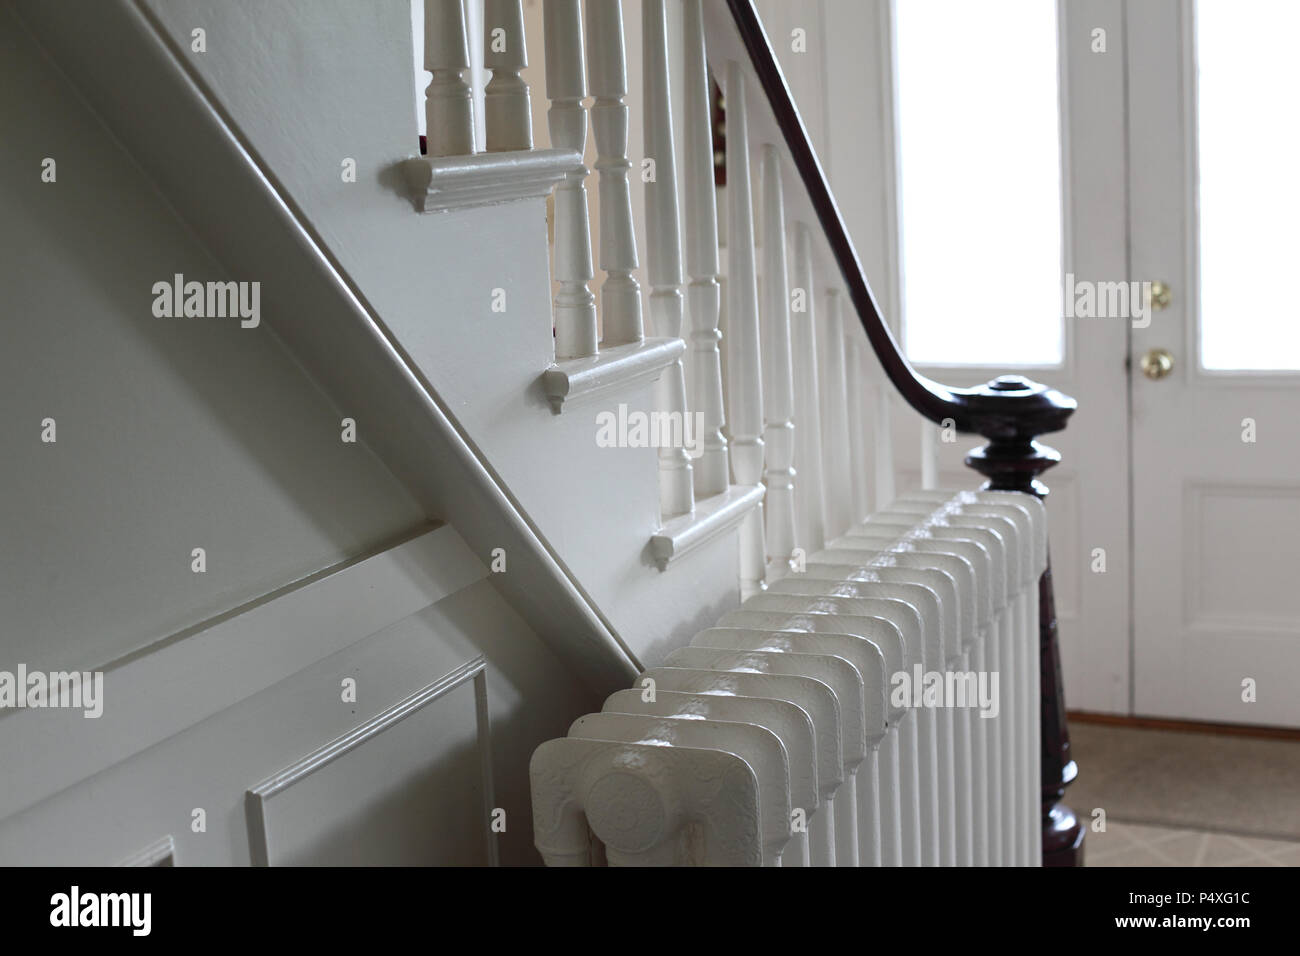 Interior Of An Old House Showing Front Doors, Steam Radiator, Staircase  With Balusters And Hand Rail.